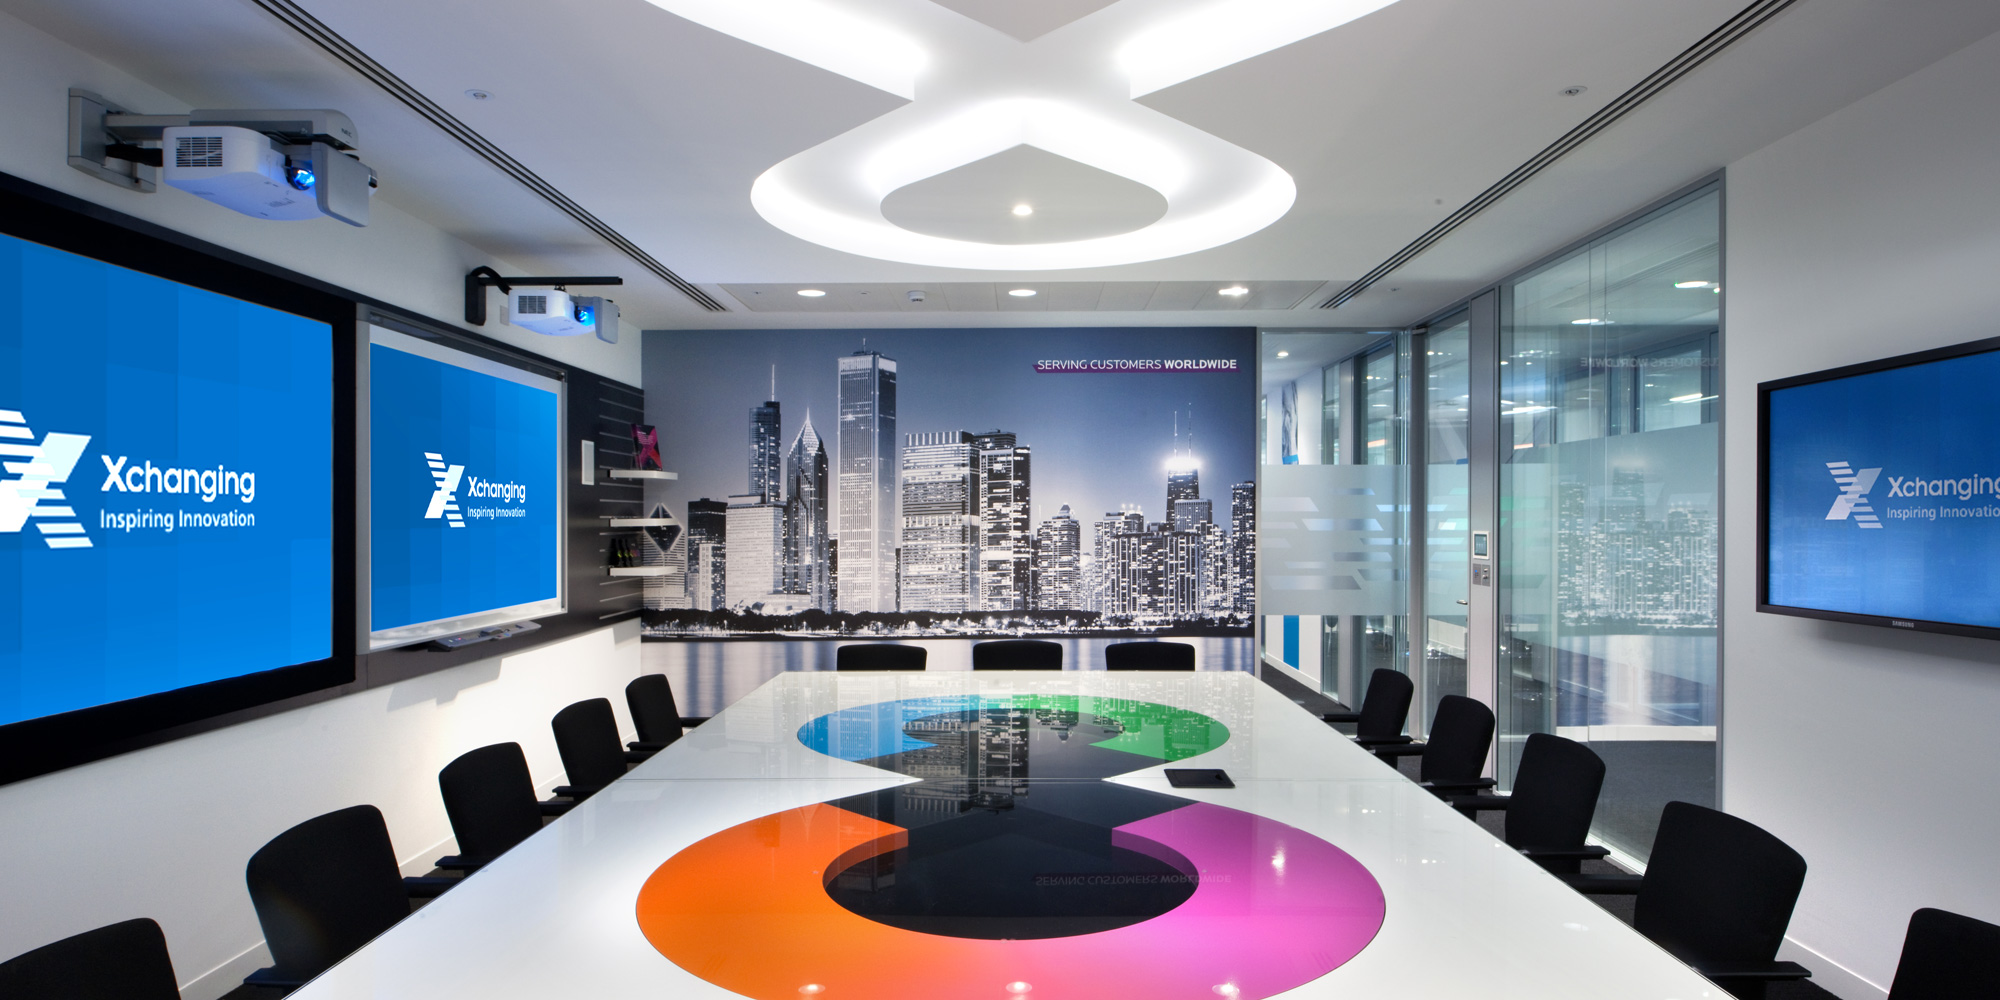 Showing the office fit-out at the XChanging premises in the Walbrook Building, London